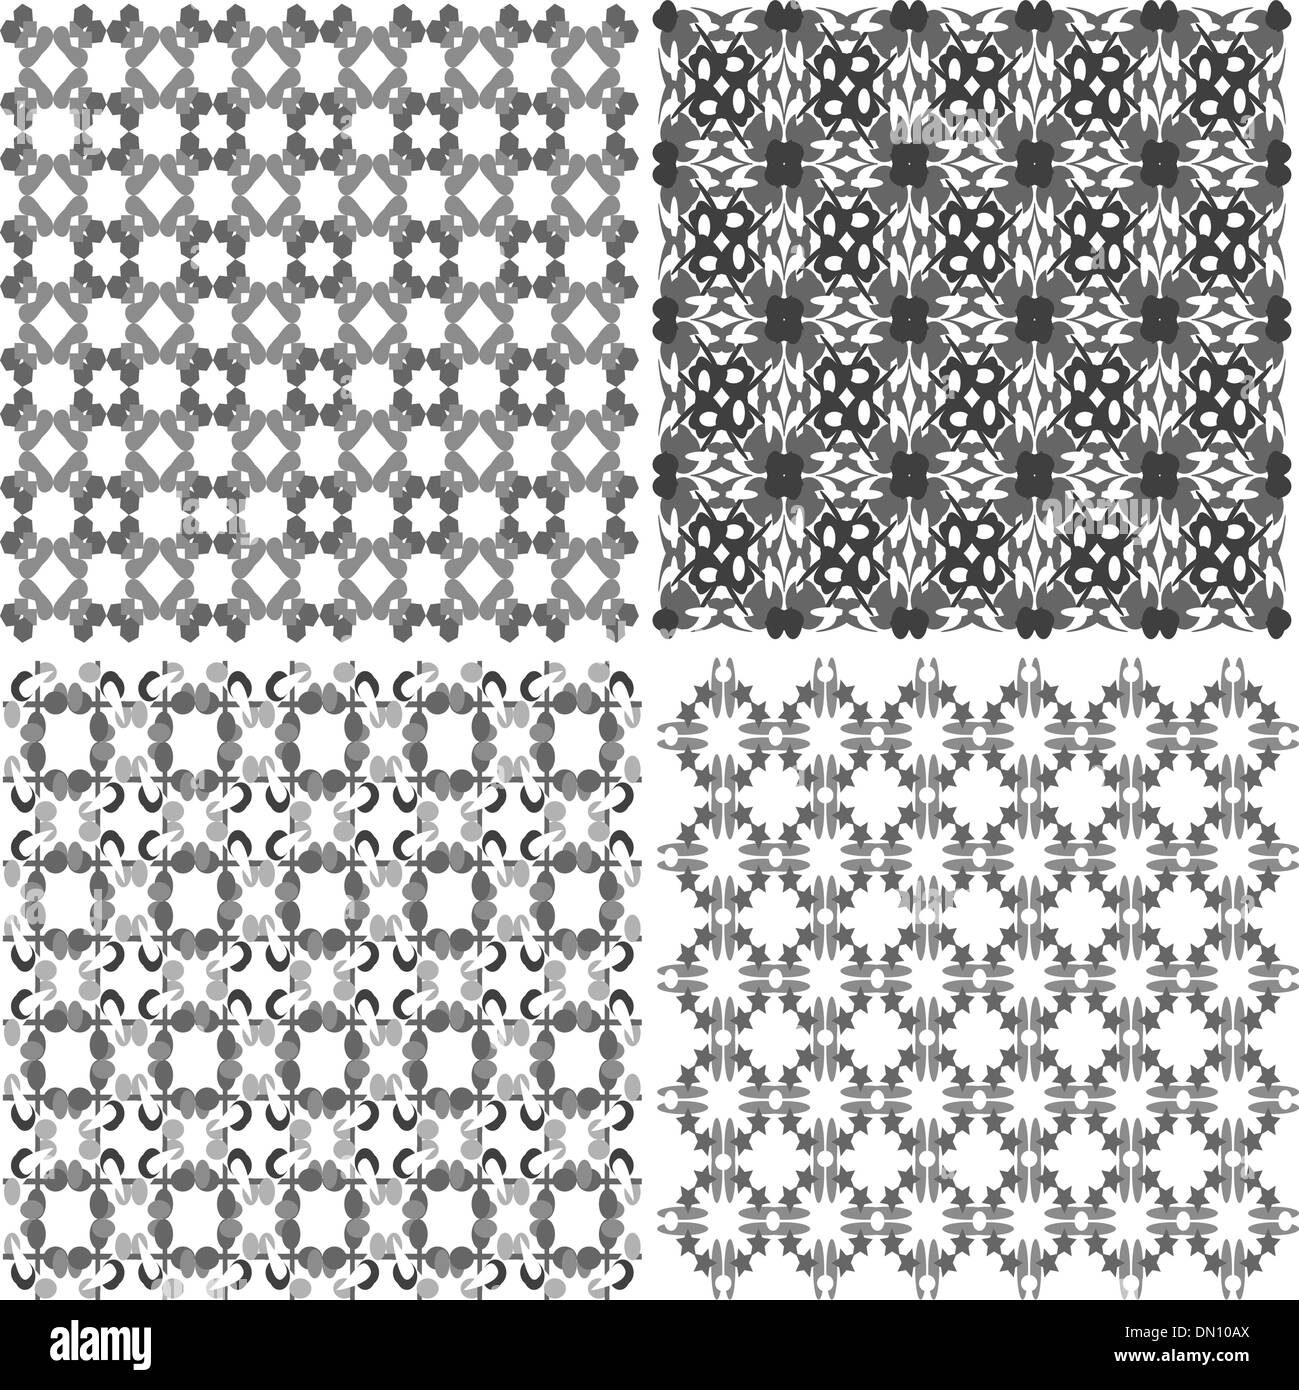 vector hand drawn seamless eastern floral patterns, monochrome - Stock Vector